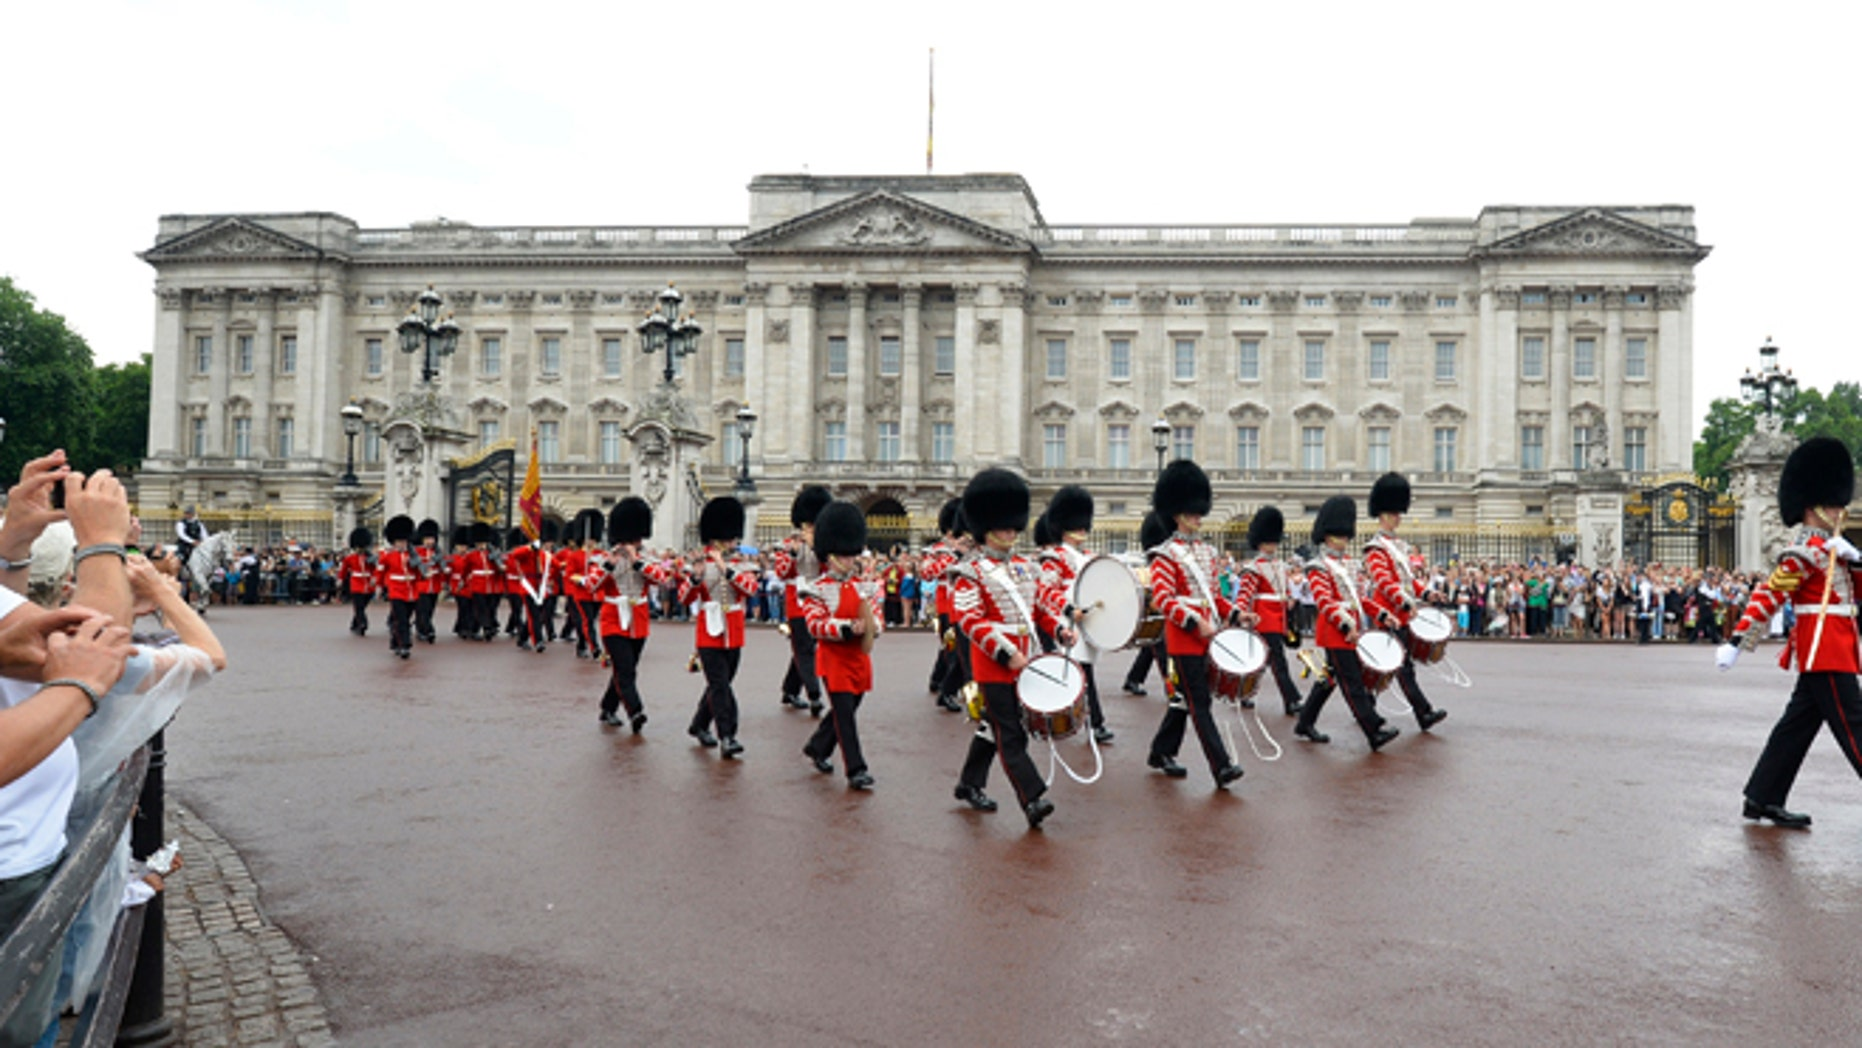 July 23: Guardsmen perform the Changing the Guard ceremony in front of Buckingham Palace, in central London.